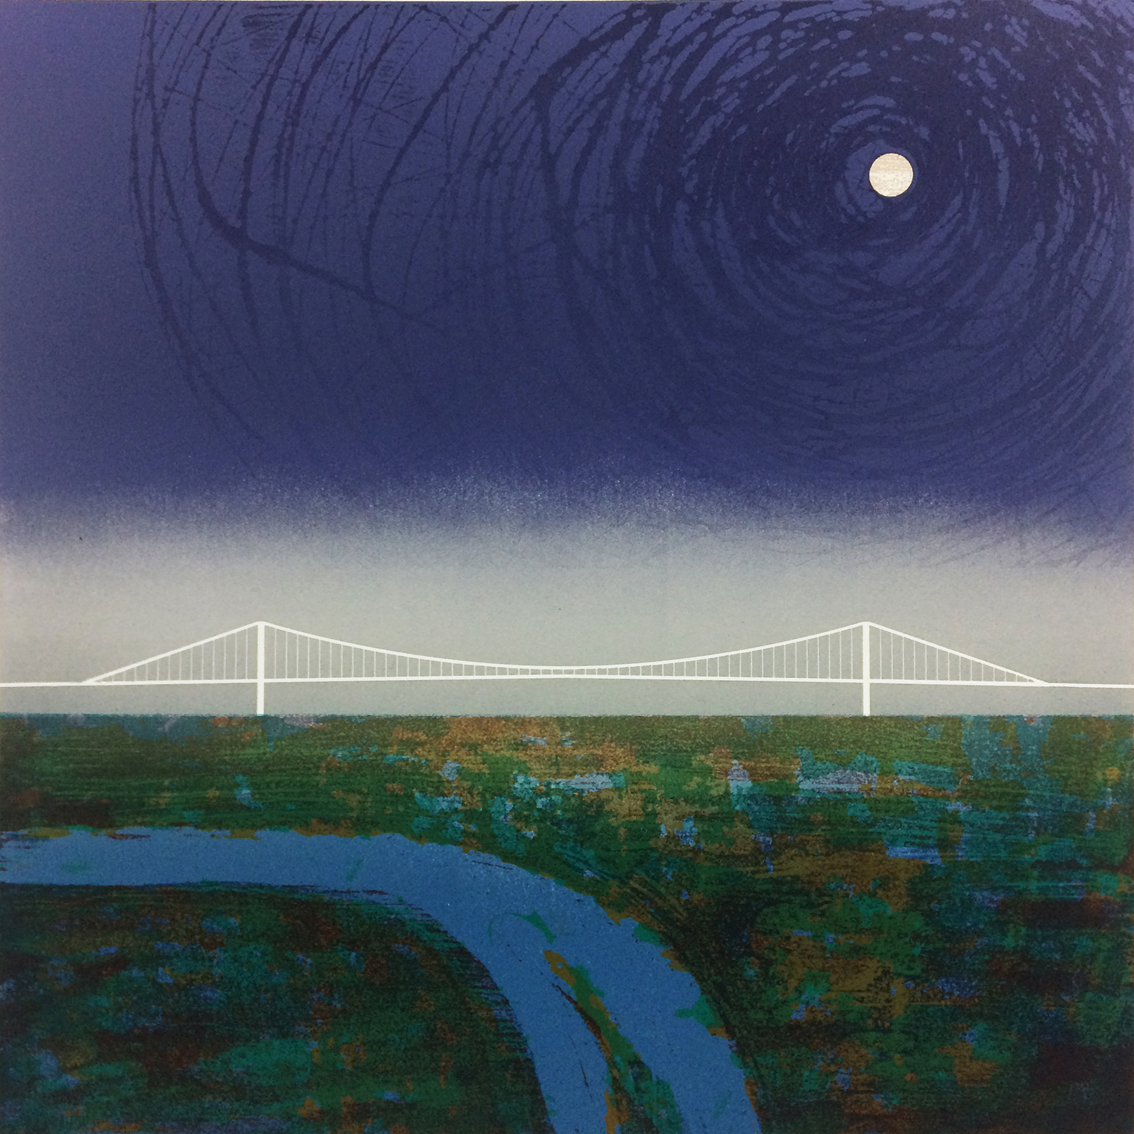 Artwork - Severn Moon II etched and cut lino Print | Steve Edwards - etched and cut lino